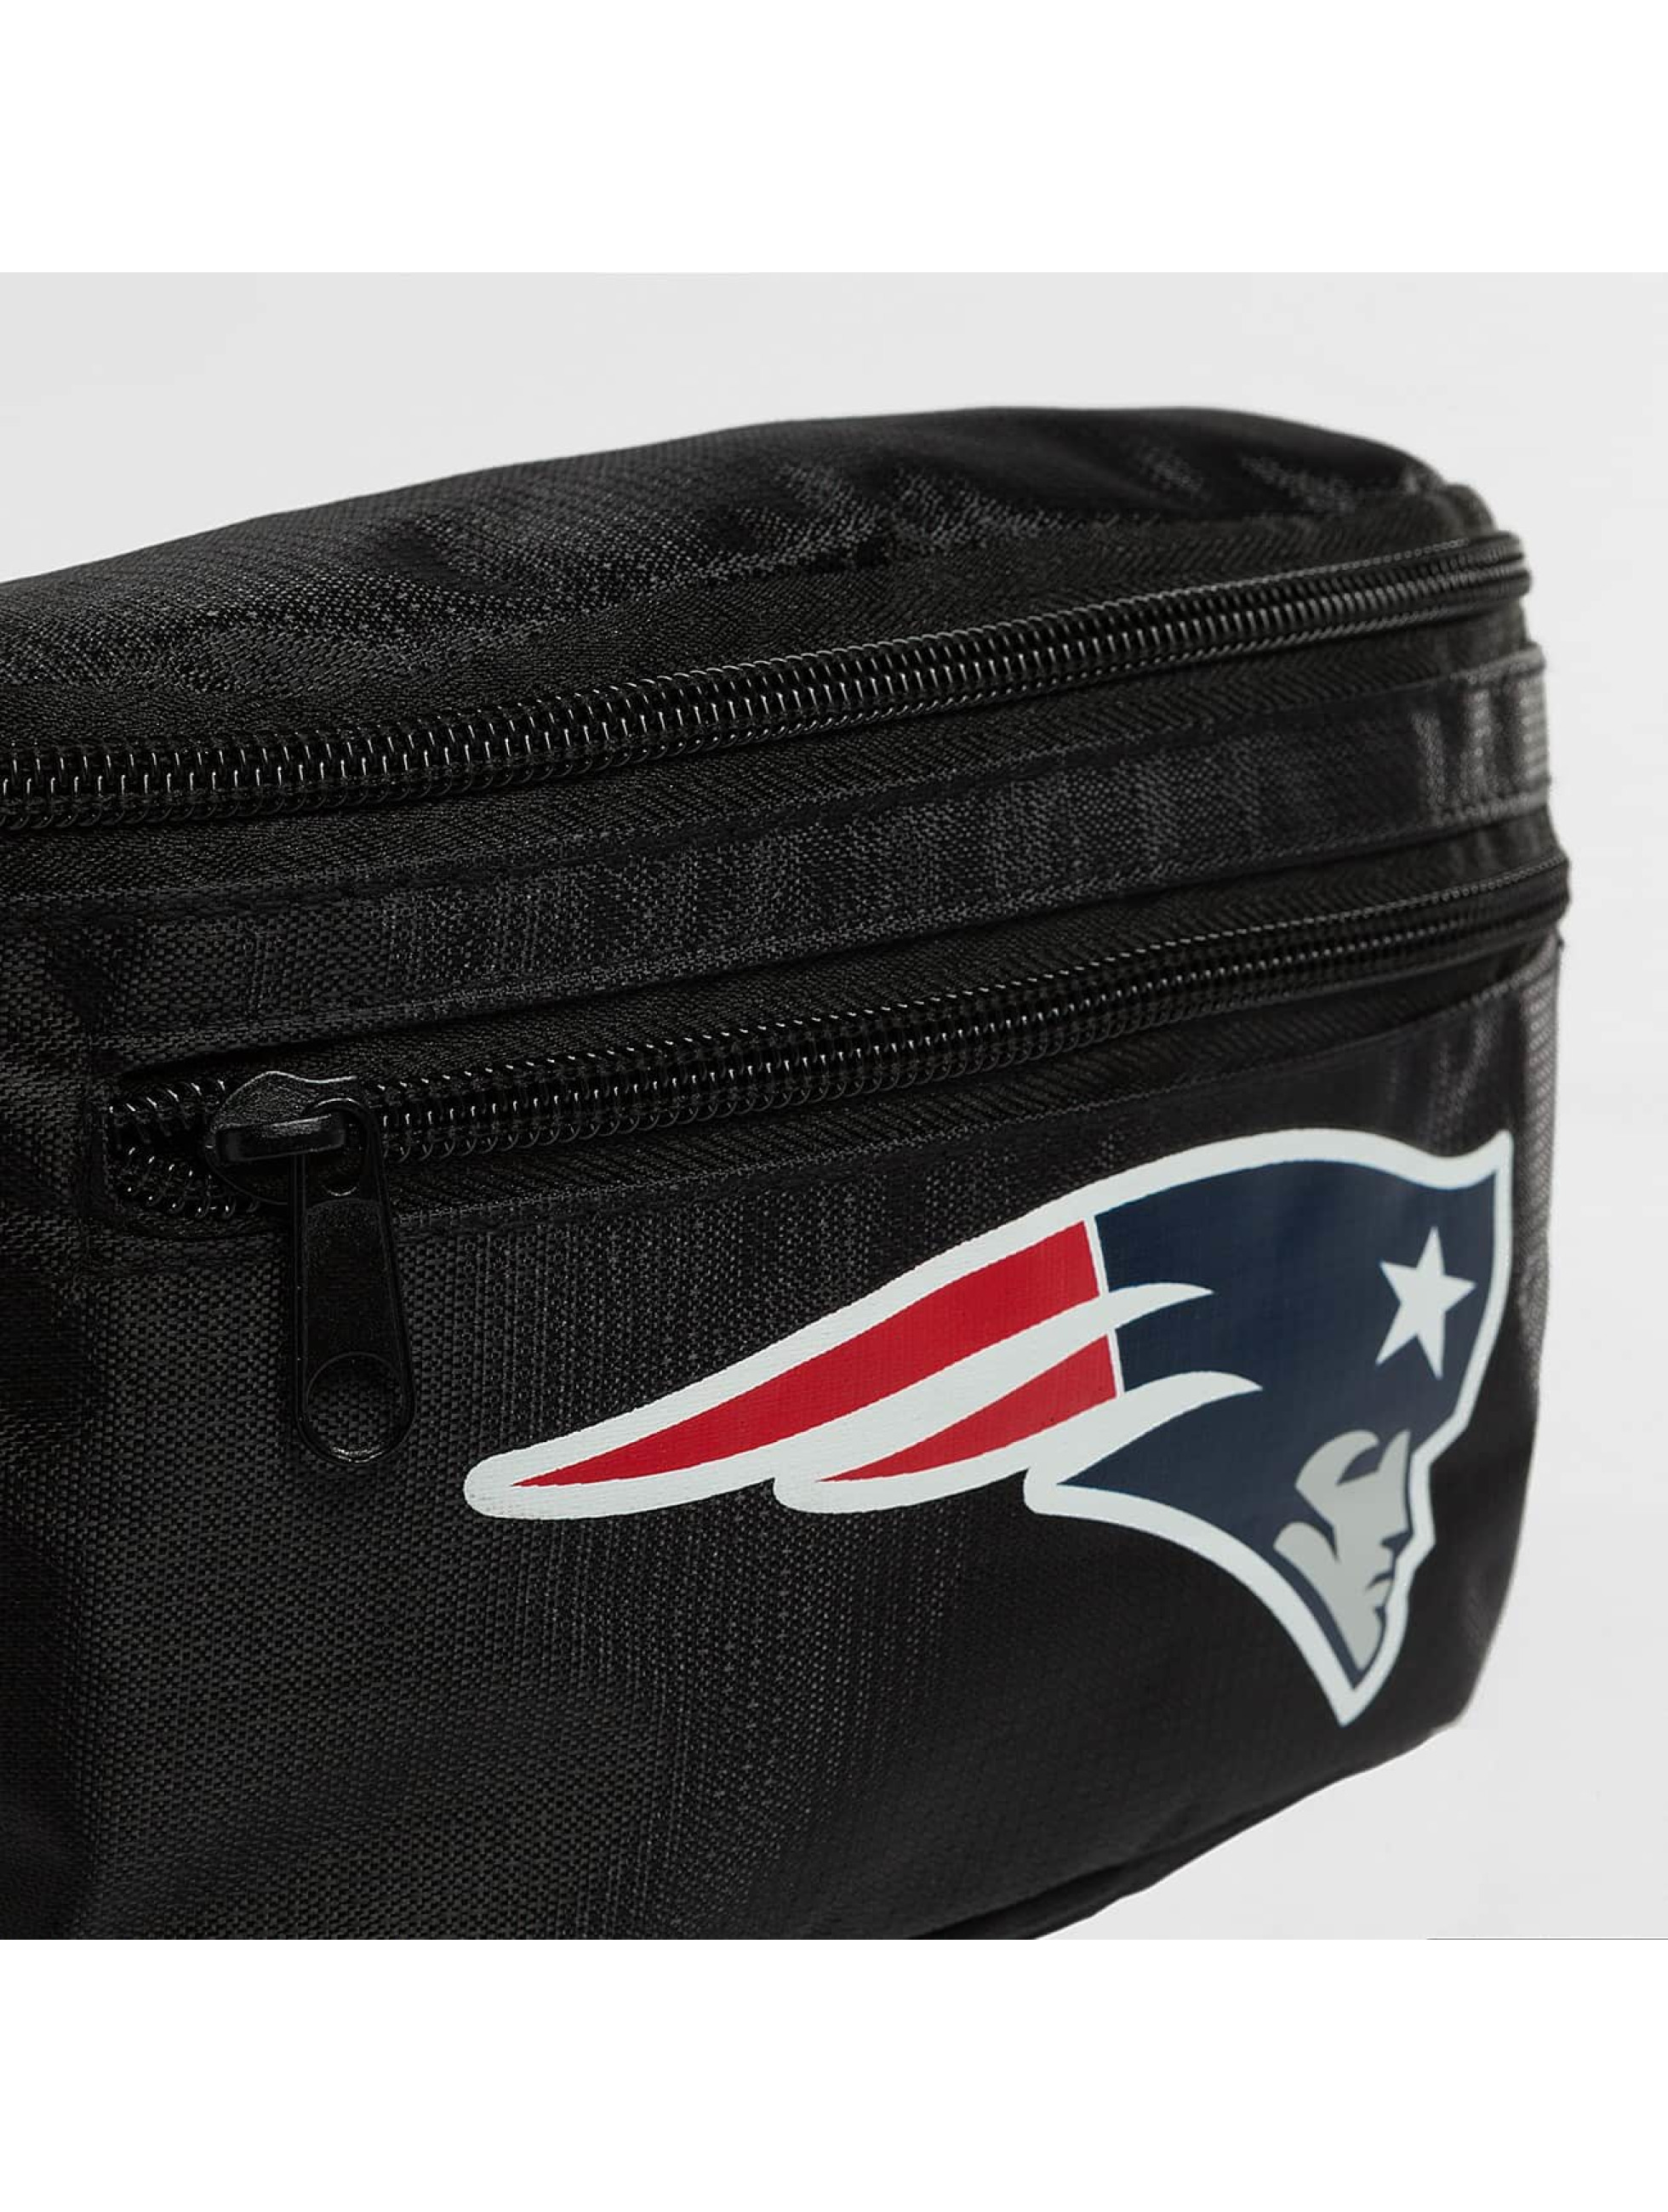 Forever Collectibles Sac NFL New England Patriots noir